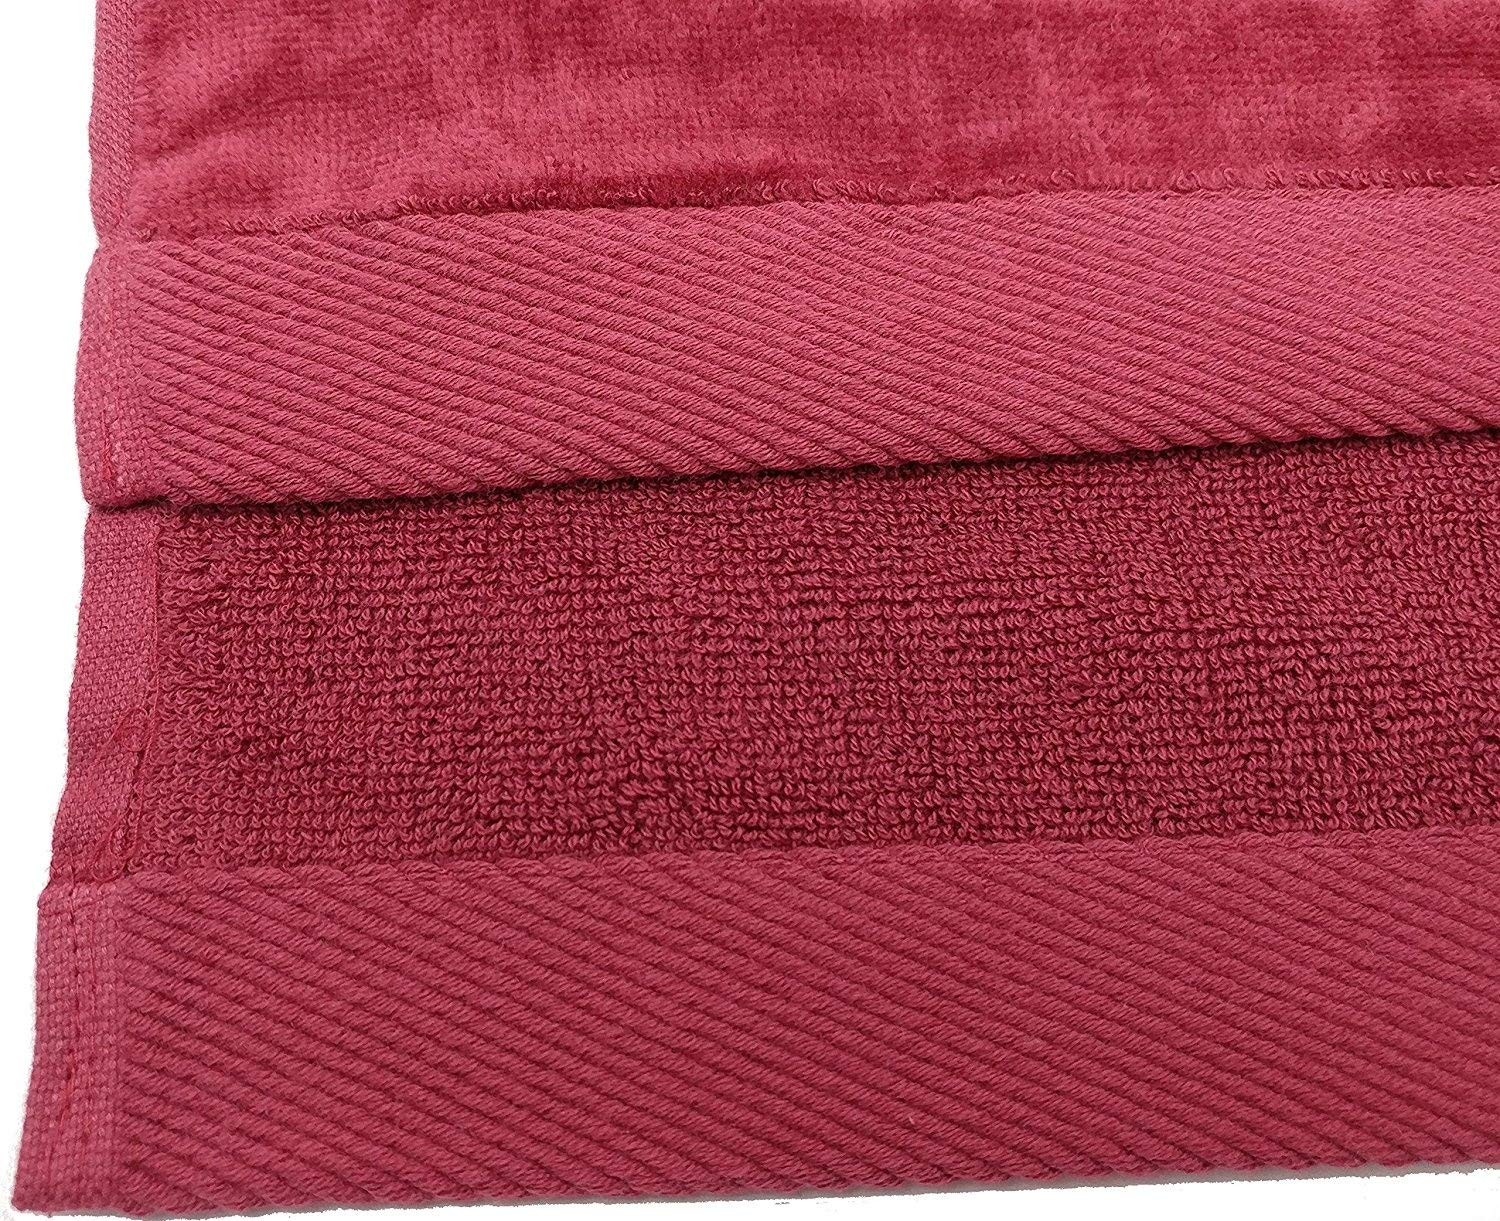 Set of 6 Fuchsia RobeSale Terry Cotton Hand Towels